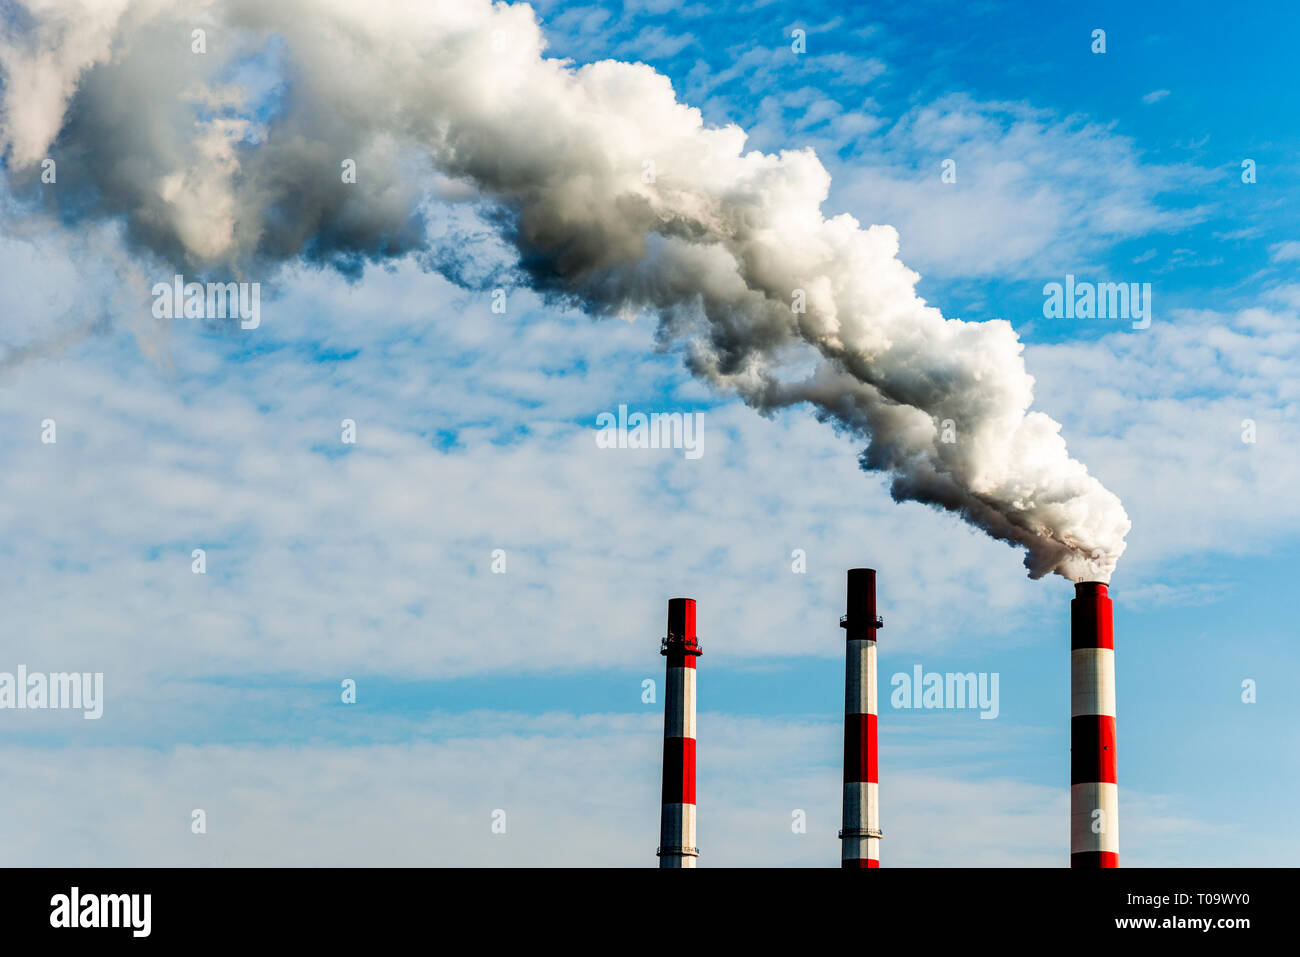 two chimneys of a power plant, one with heavy smoke - Stock Image